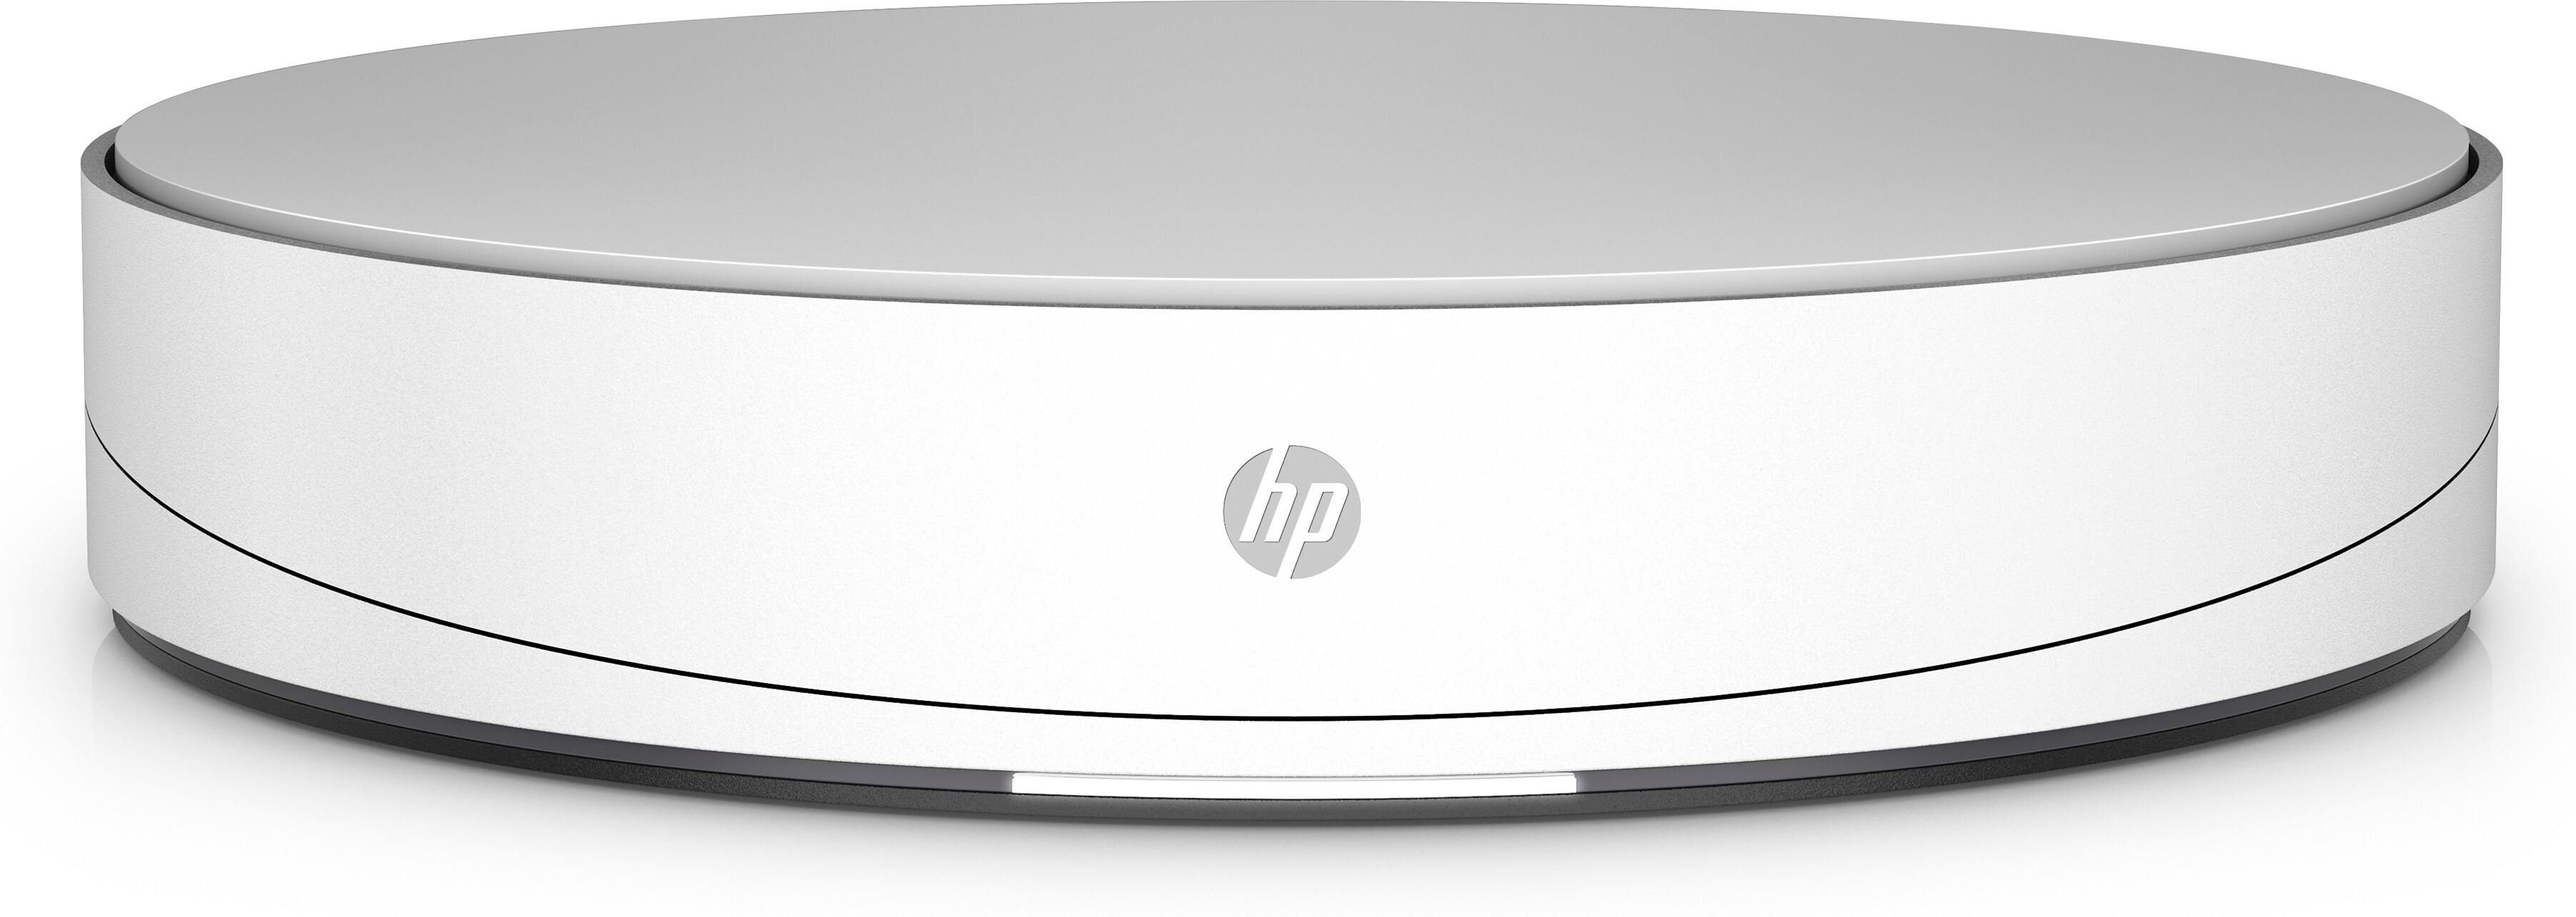 HP Sprout di 3D Capture Stage 0190780931400 Z4C03AA 10_2M38P71